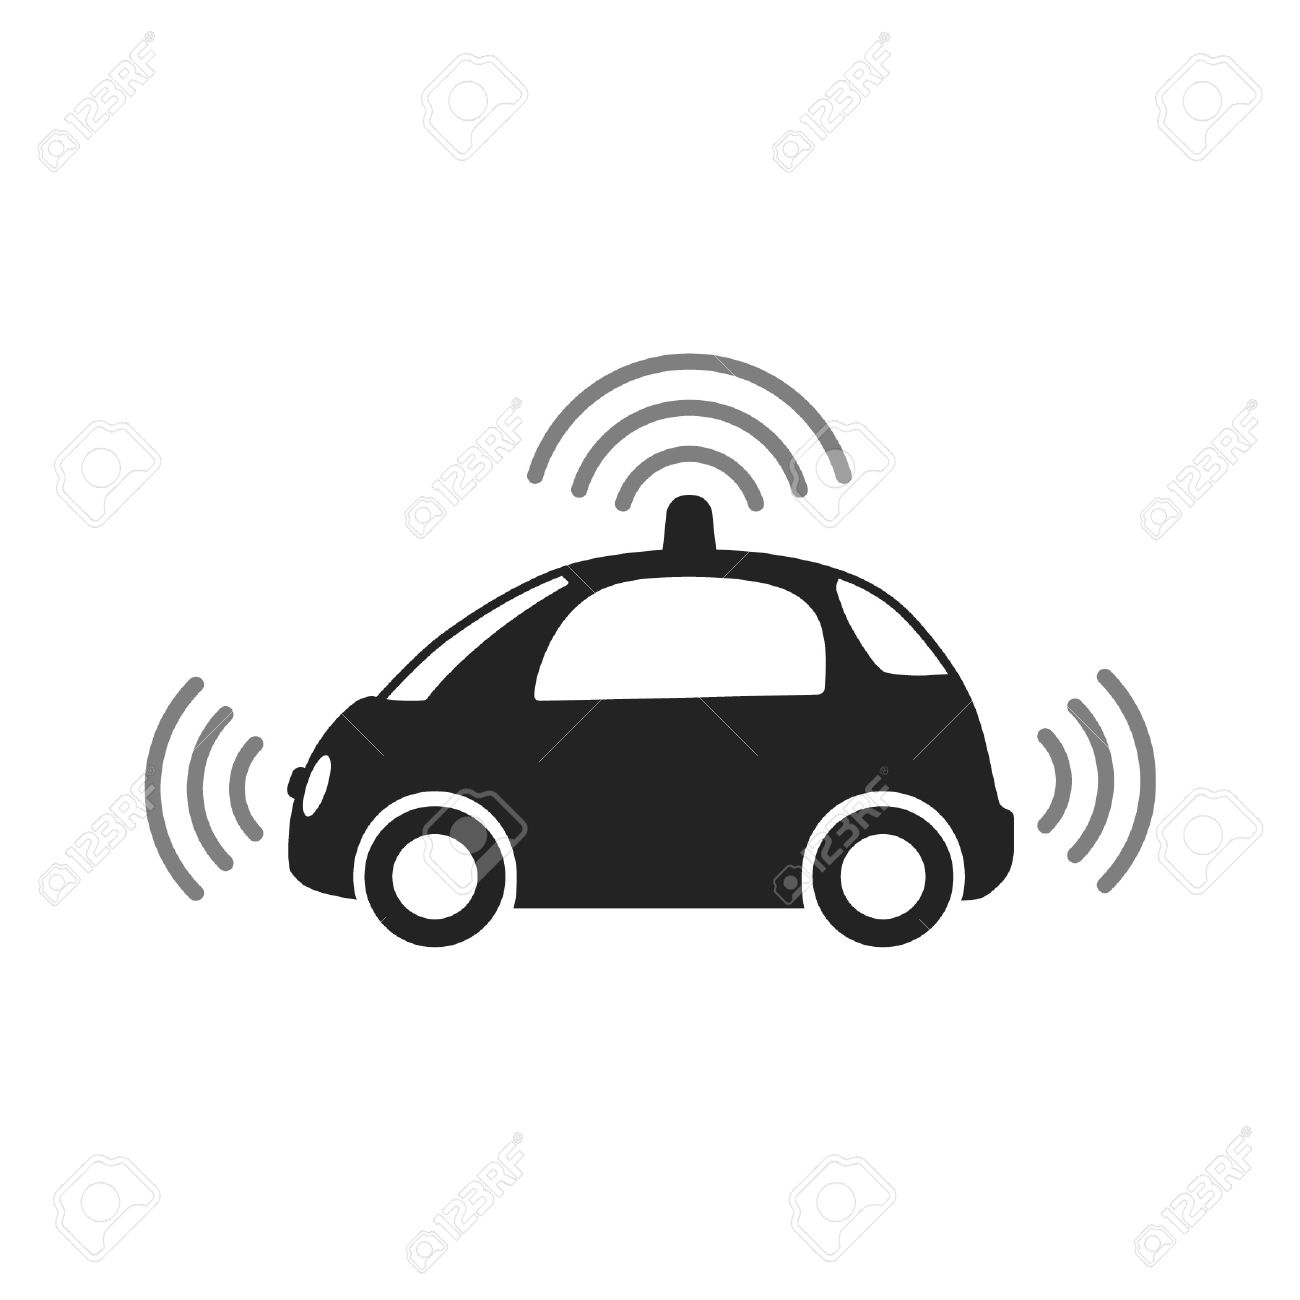 Police car radar clipart picture freeuse library Autonomous Self-driving Driverless Vehicle Side View With Radar ... picture freeuse library